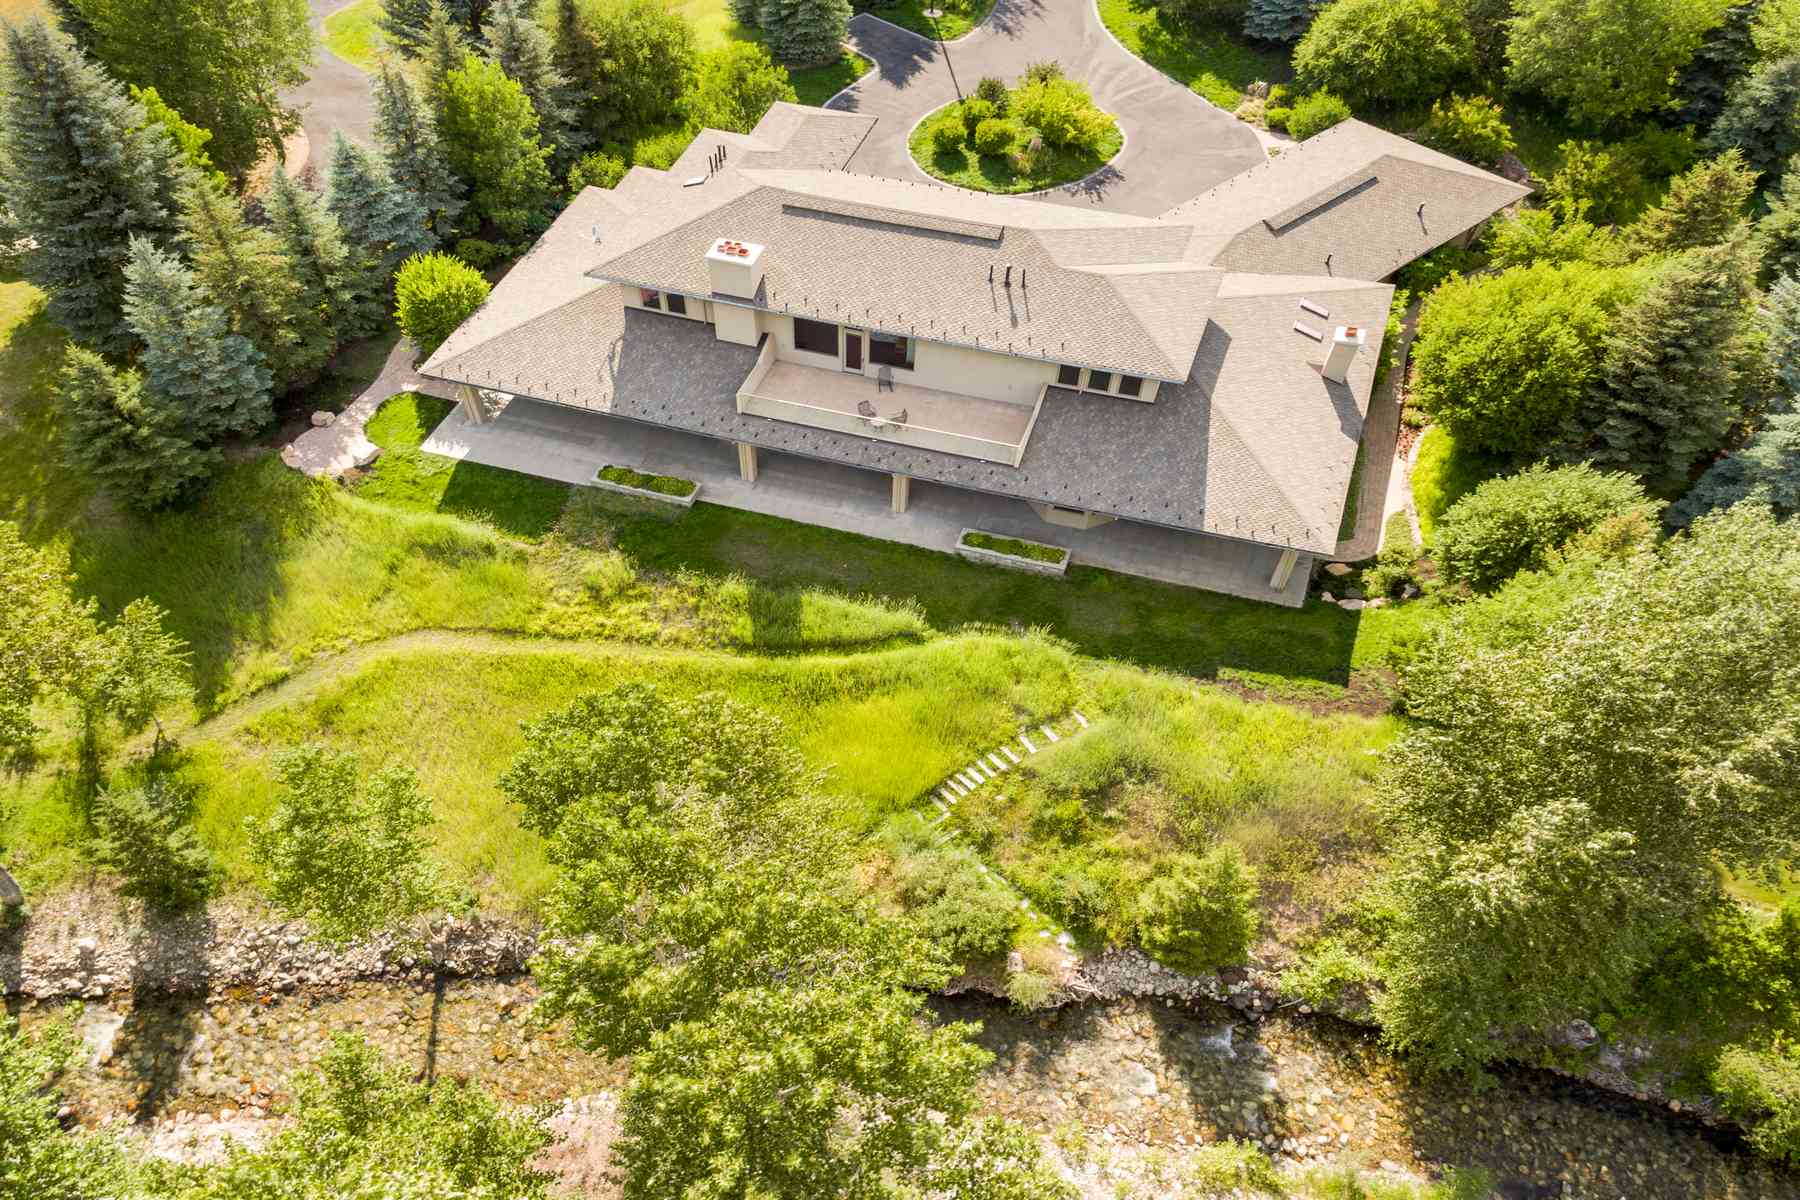 Maison unifamiliale pour l Vente à One of a kind Contemporary Home 205 Canyon Road Sun Valley, Idaho, 83353 États-Unis